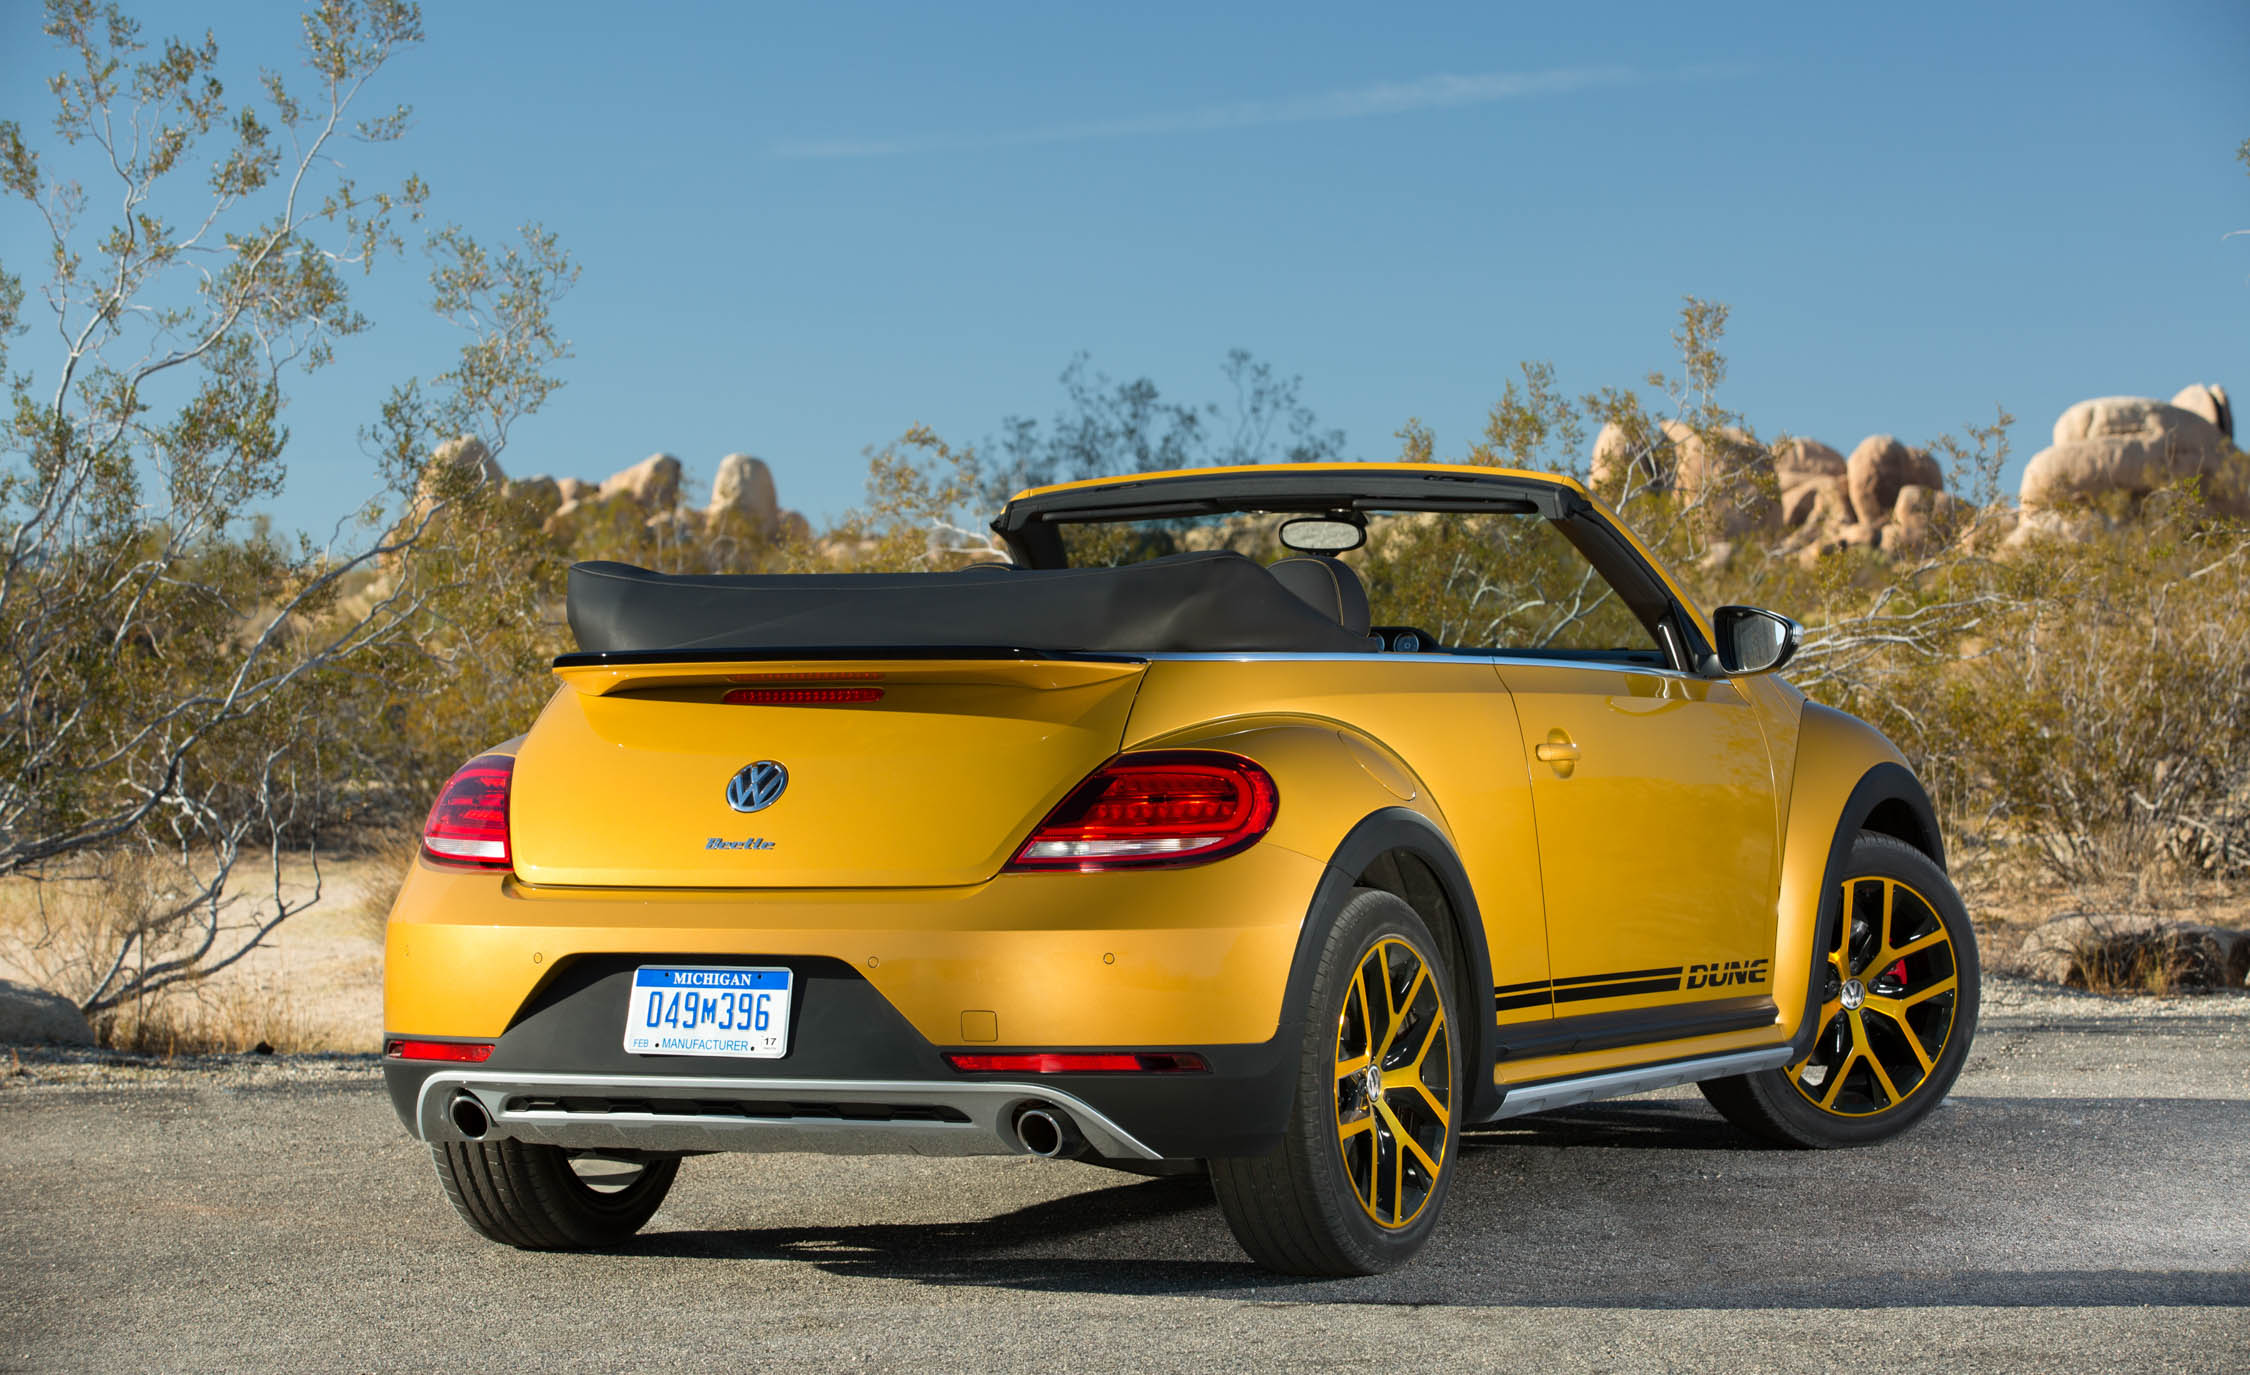 2016 Volkswagen Beetle Dune Convertible Exterior Full Rear (Photo 4 of 32)